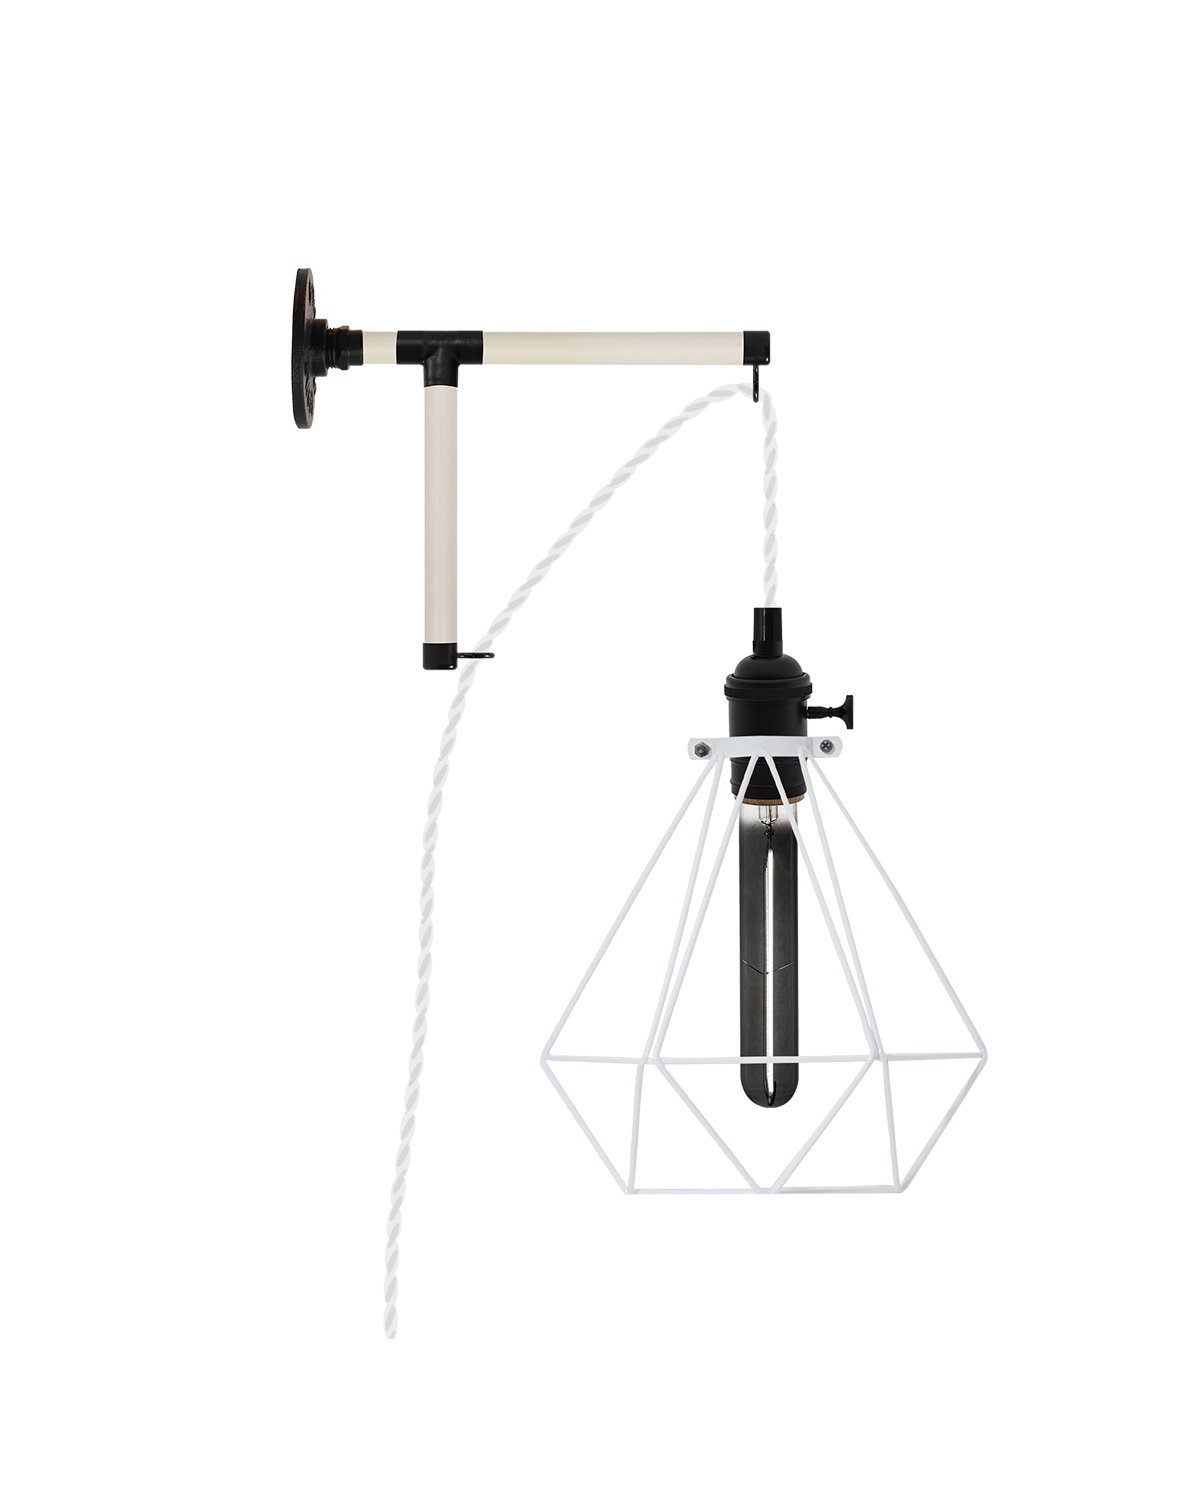 Plug-in L-Bracket Wall Sconce: Black and White